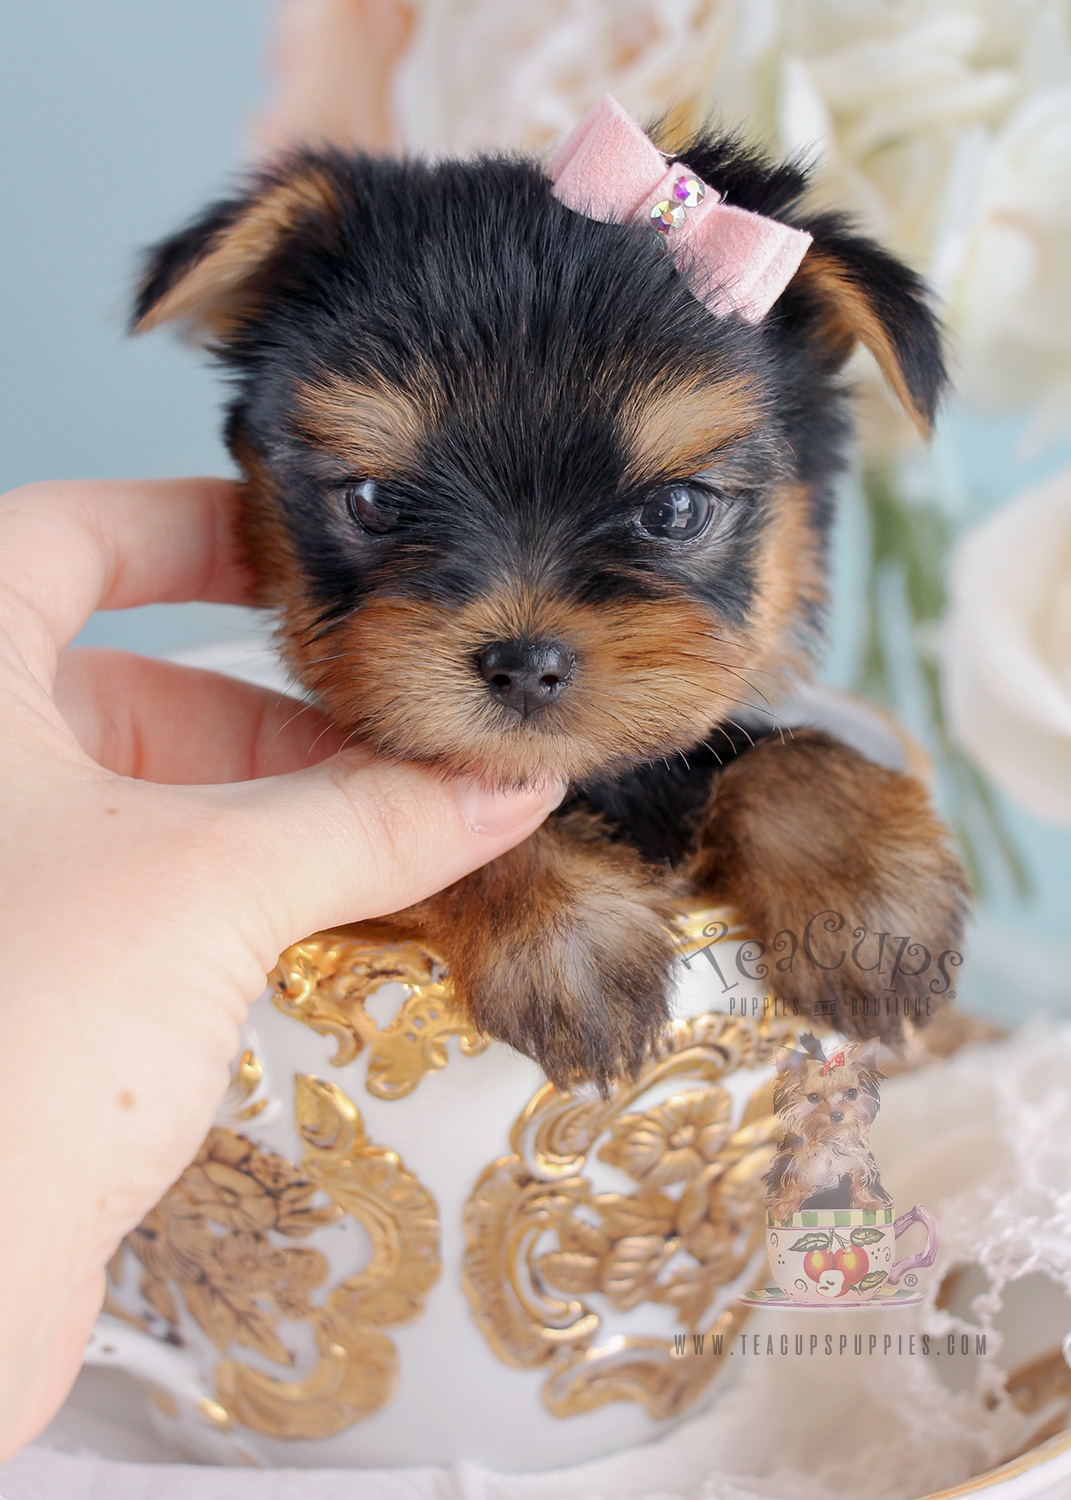 Teacup Puppies Tiny Yorkie Puppy For Sale #267